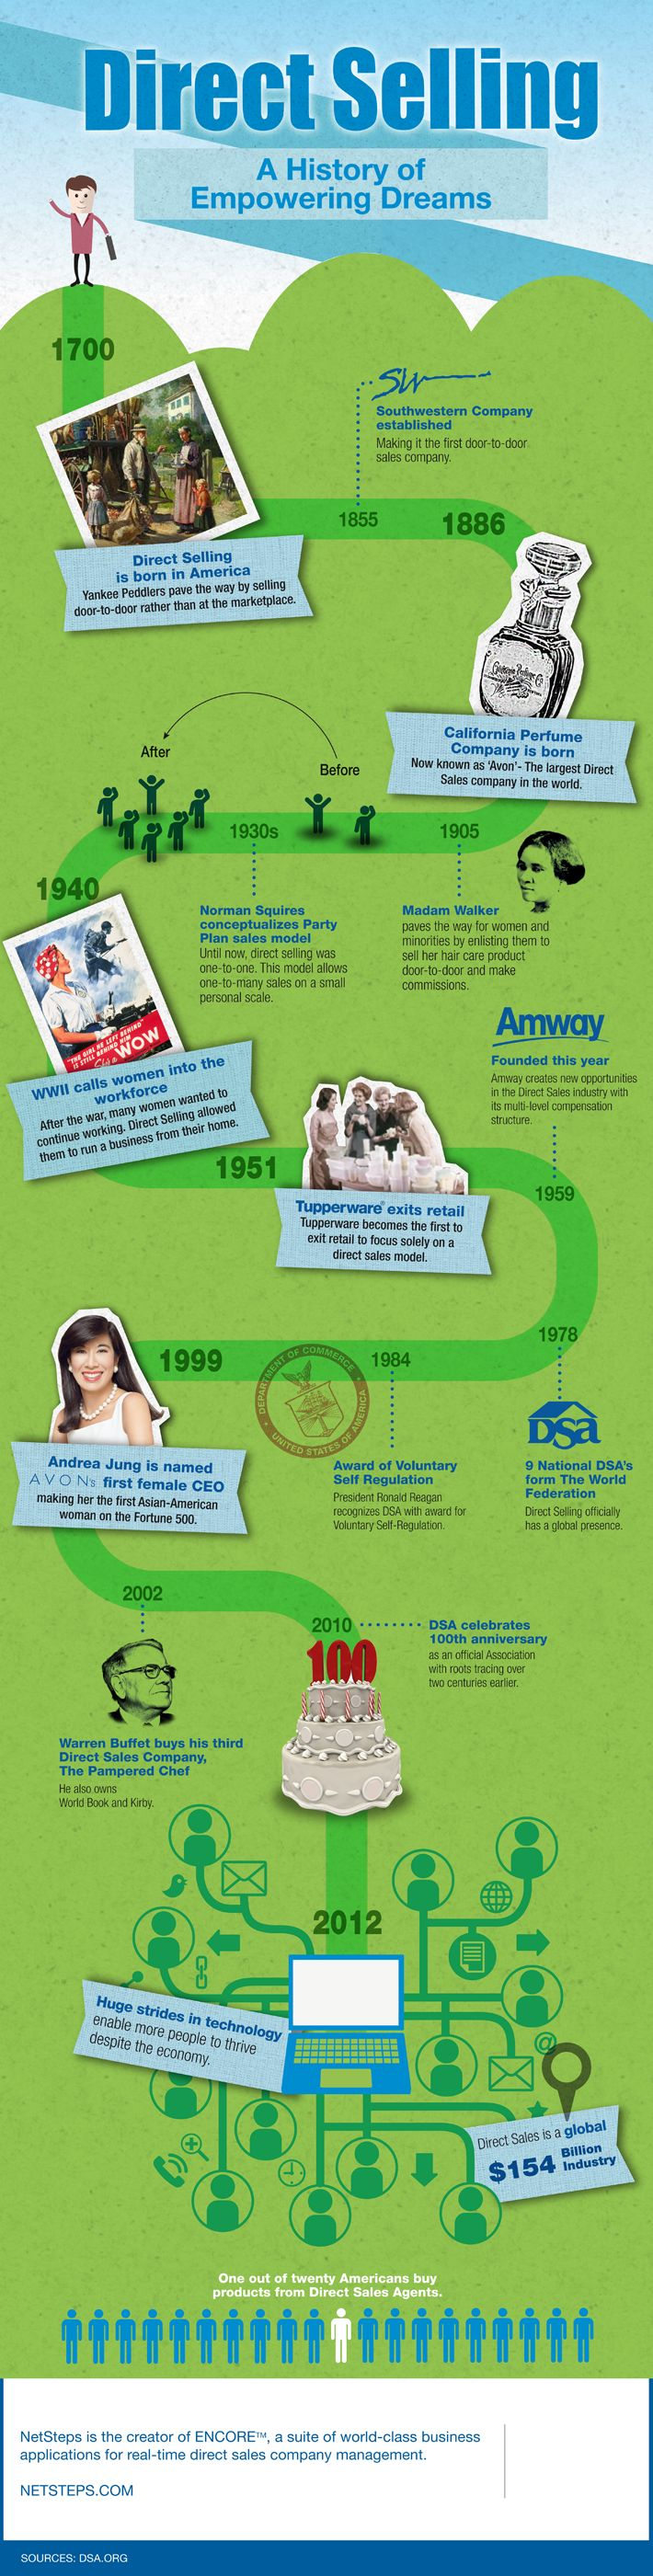 Direct Selling: A History of Empowering Dreams